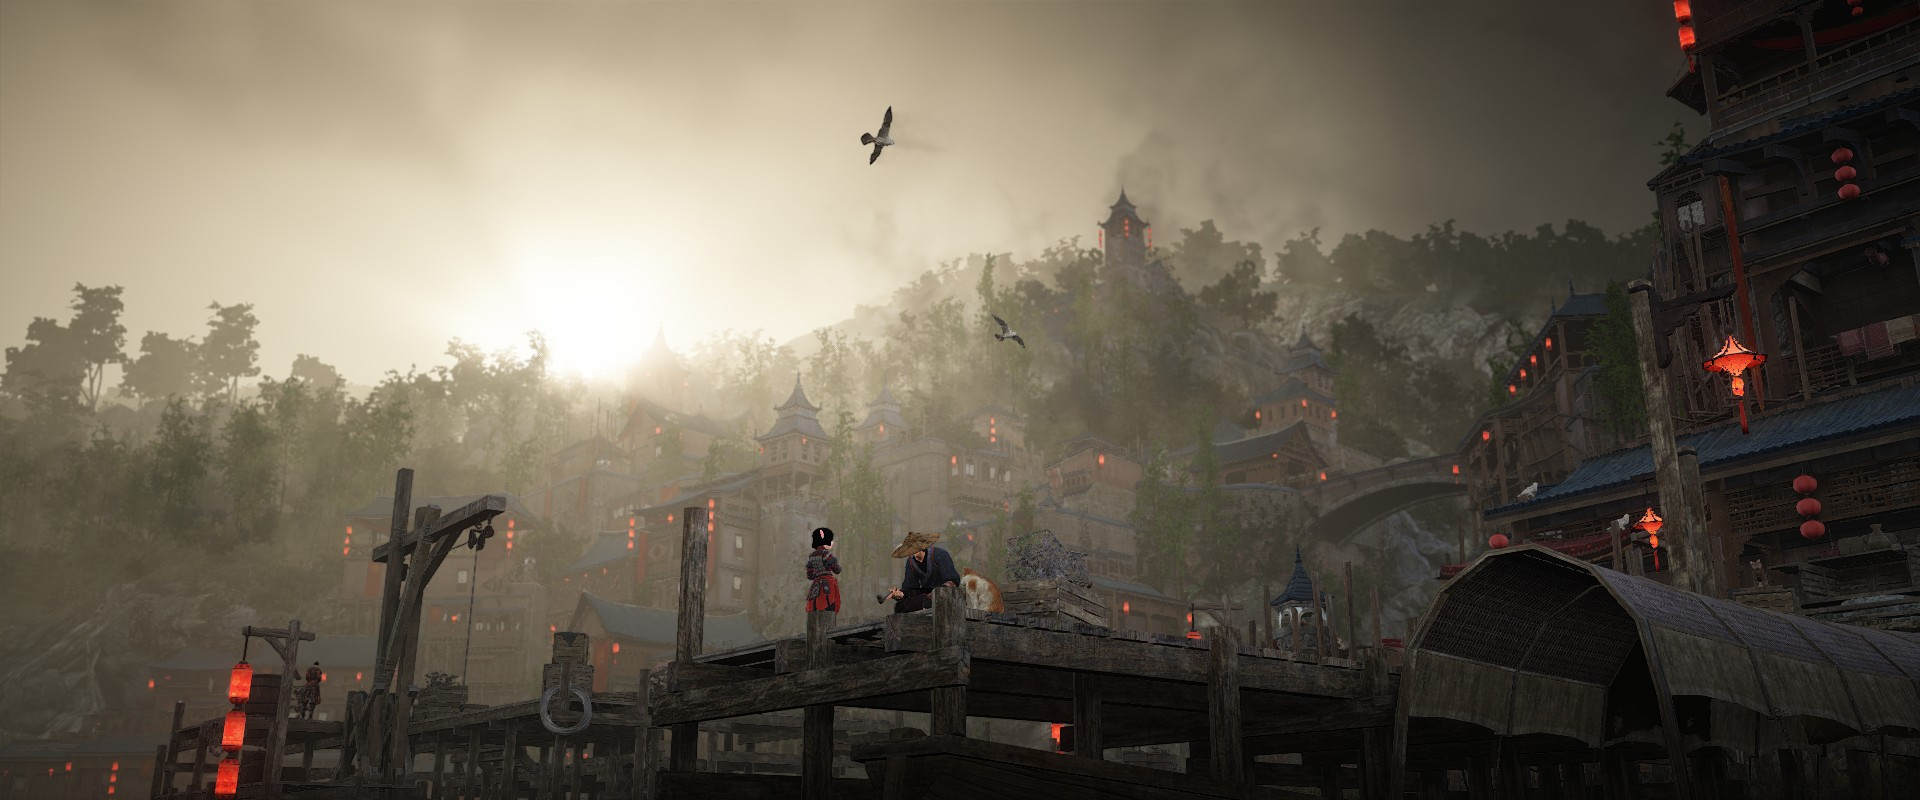 Animated Spider Wallpaper Black Desert Online S Massive Naval Combat Expansion Has A